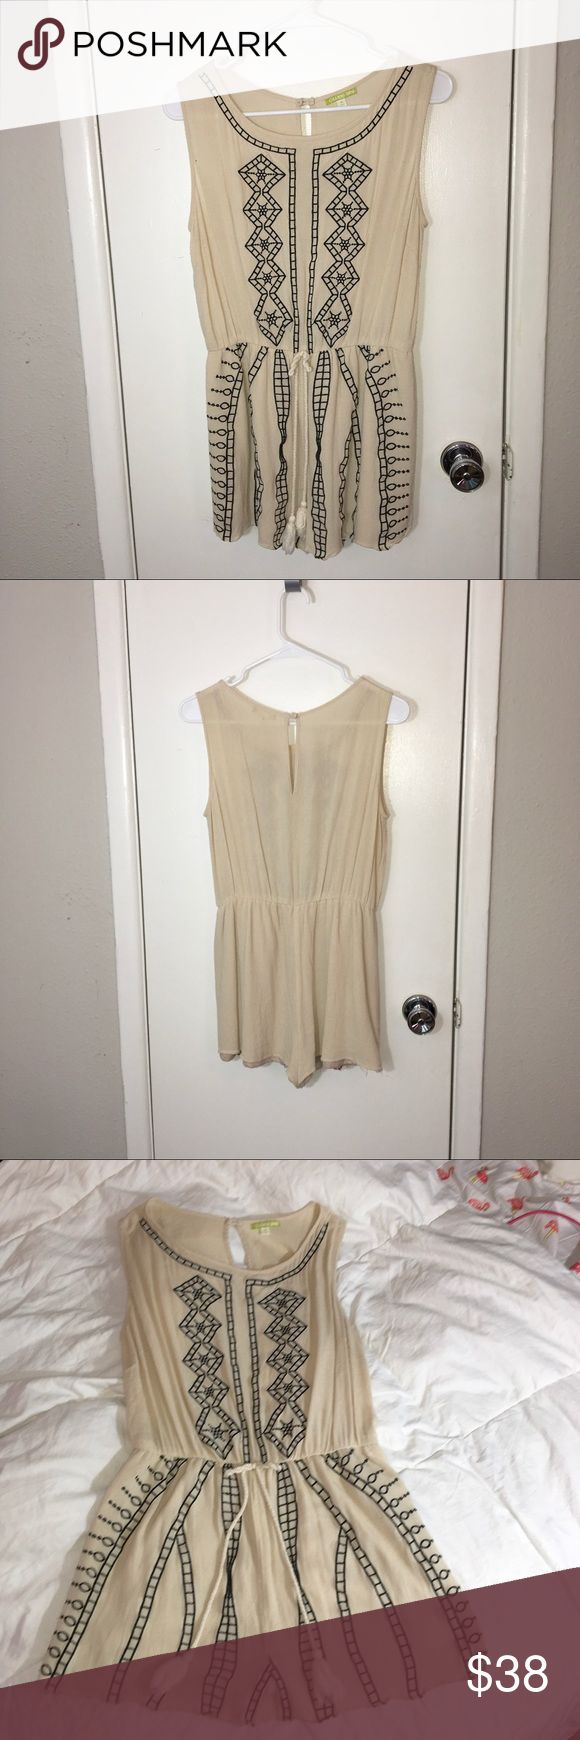 Gianni Bini cream embroidered romper size M Adorable cream romper with navy embroidery detail. Size Medium, Gianni Bini Gianni Bini Dresses